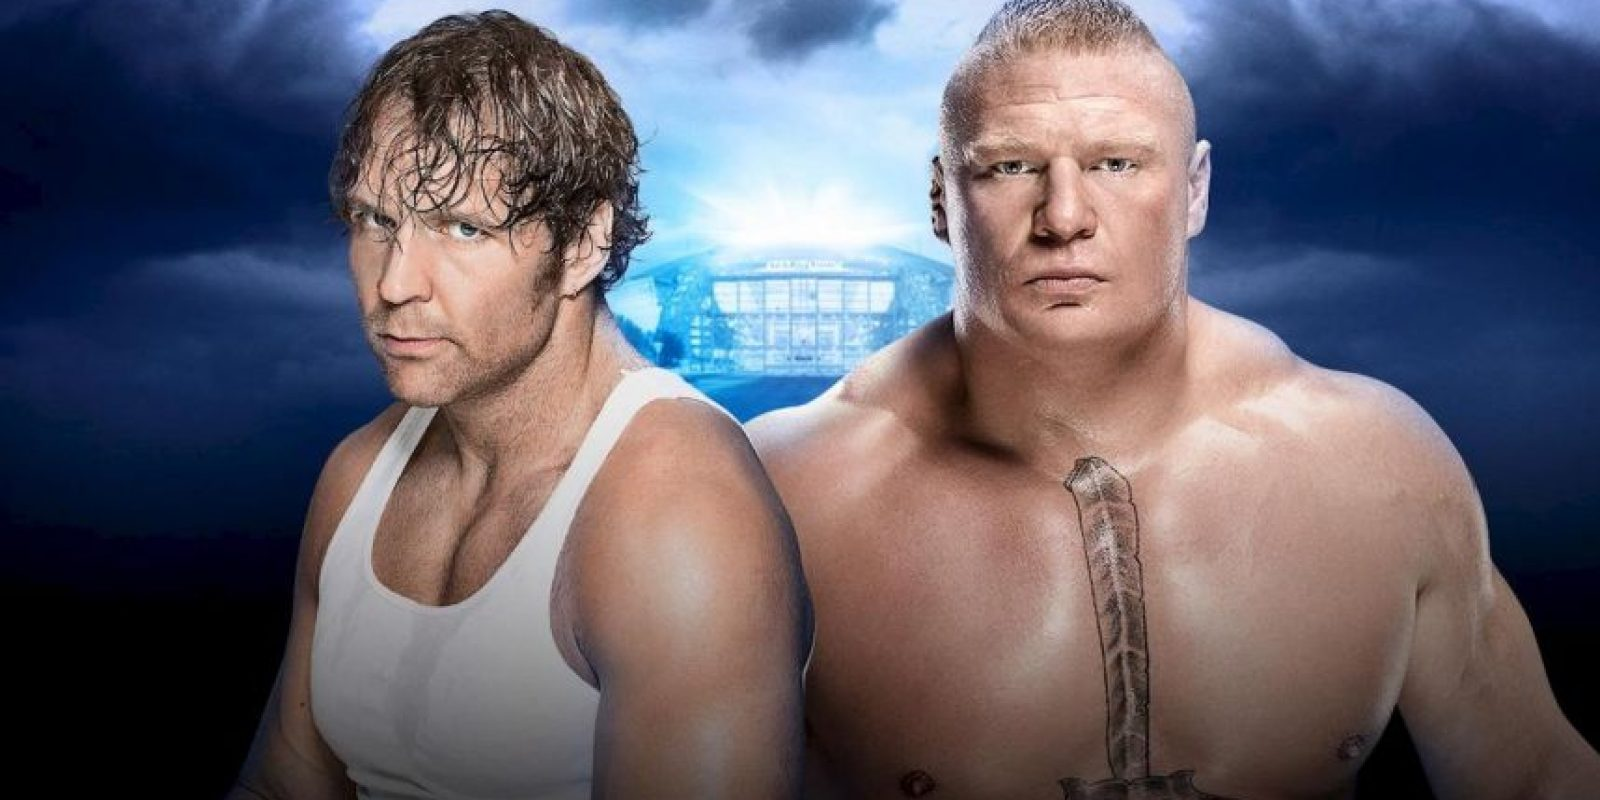 No Holds Barred Street Fight: Dean Ambrose vs. Brock Lesnar Foto: WWE